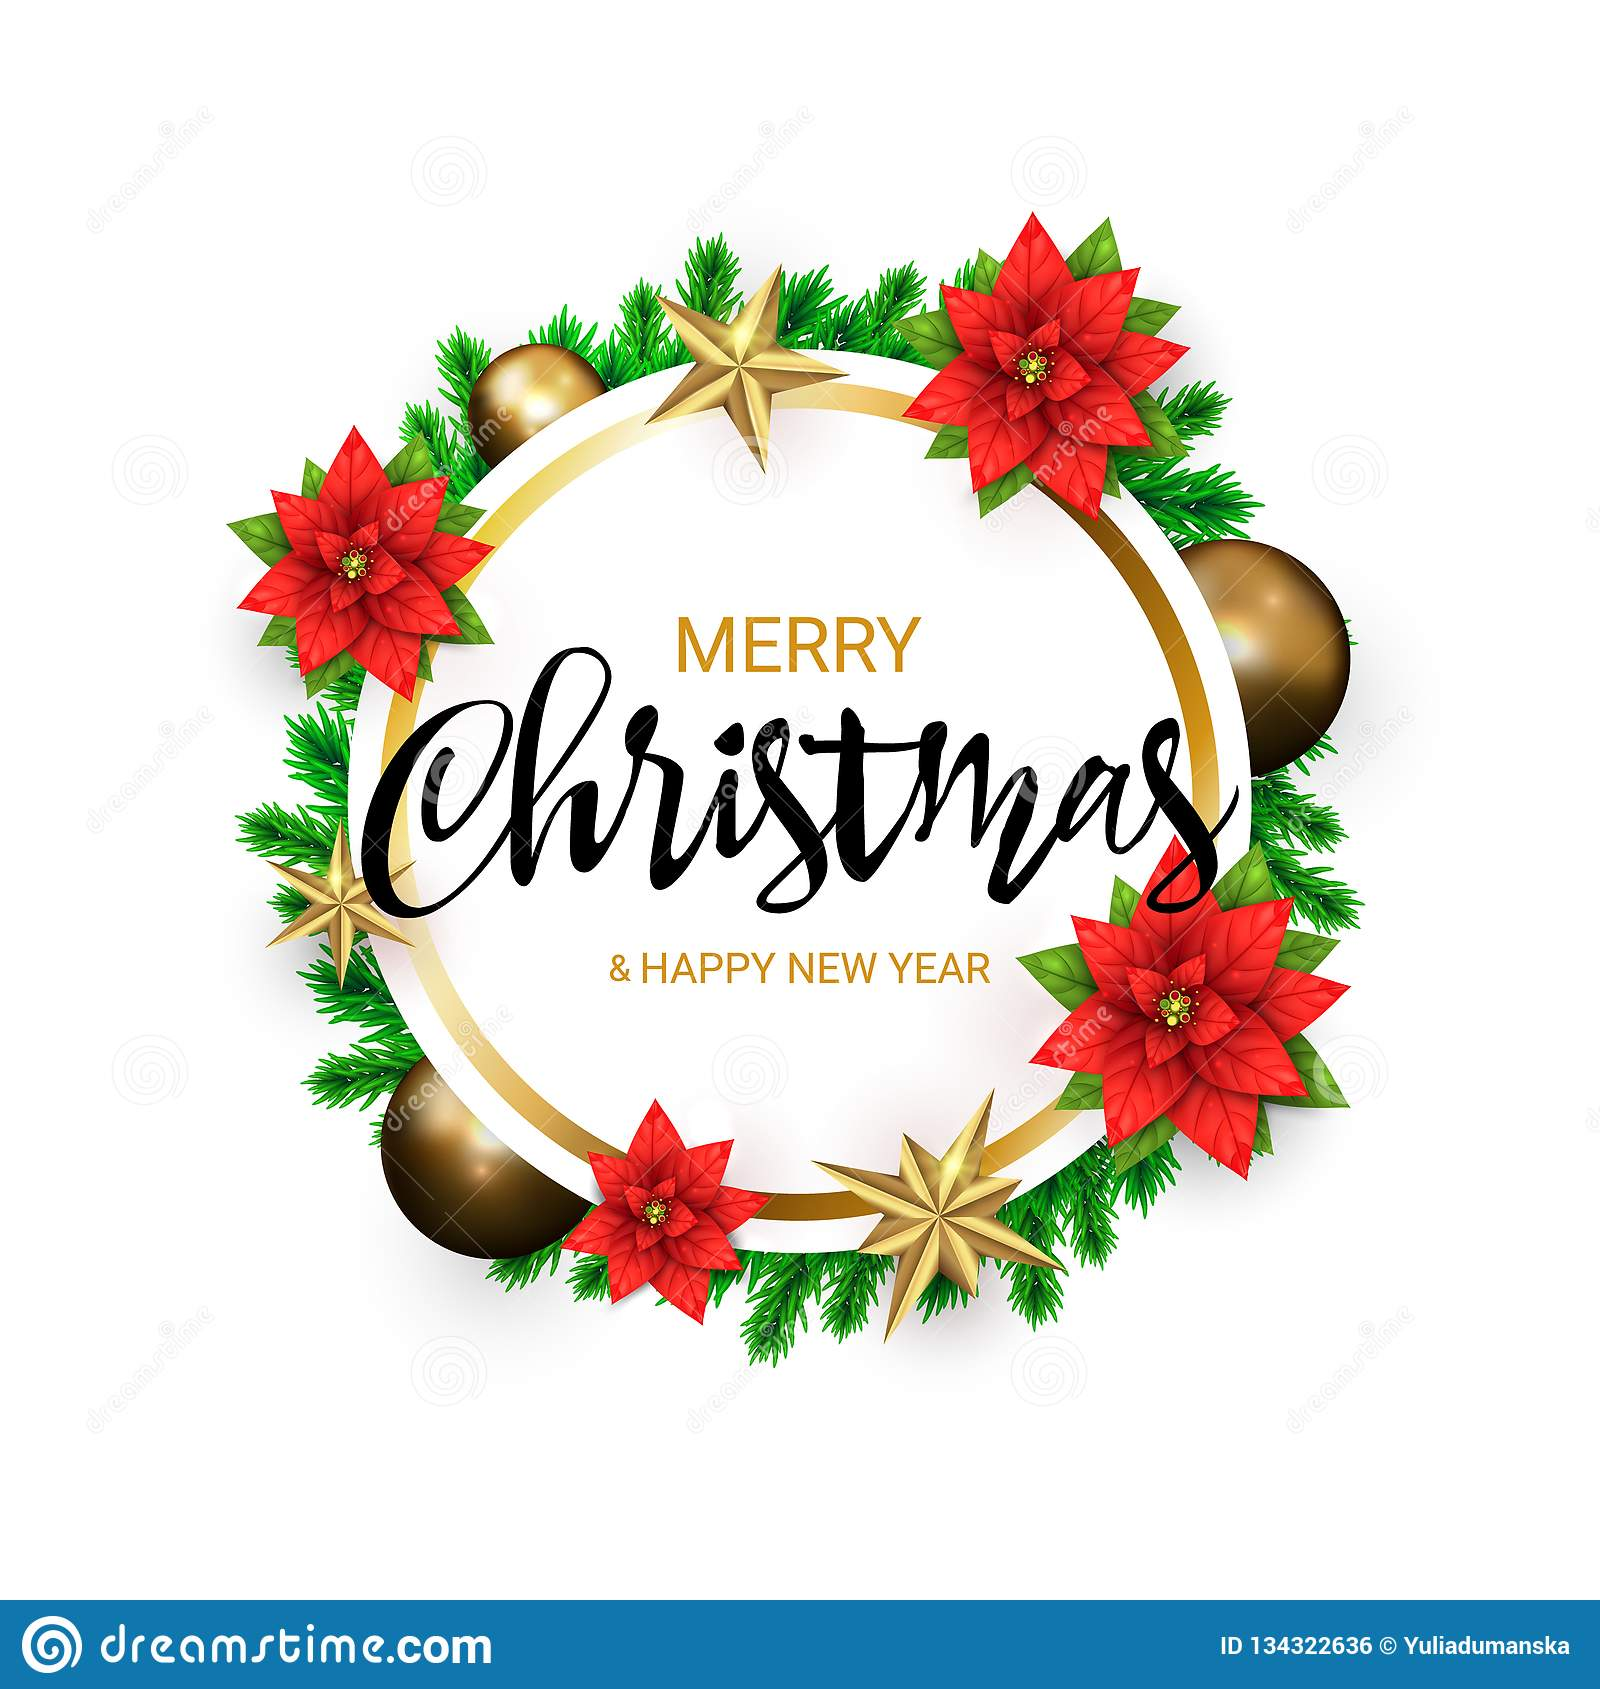 2019 merry christmas and happy new year round banner with a wreath of green pine branches and golden stars poinsettia stock vector illustration of decoration festive 134322636 https www dreamstime com merry christmas happy new year round banner wreath green pine branches golden stars poinsettia decorated gold balls image134322636